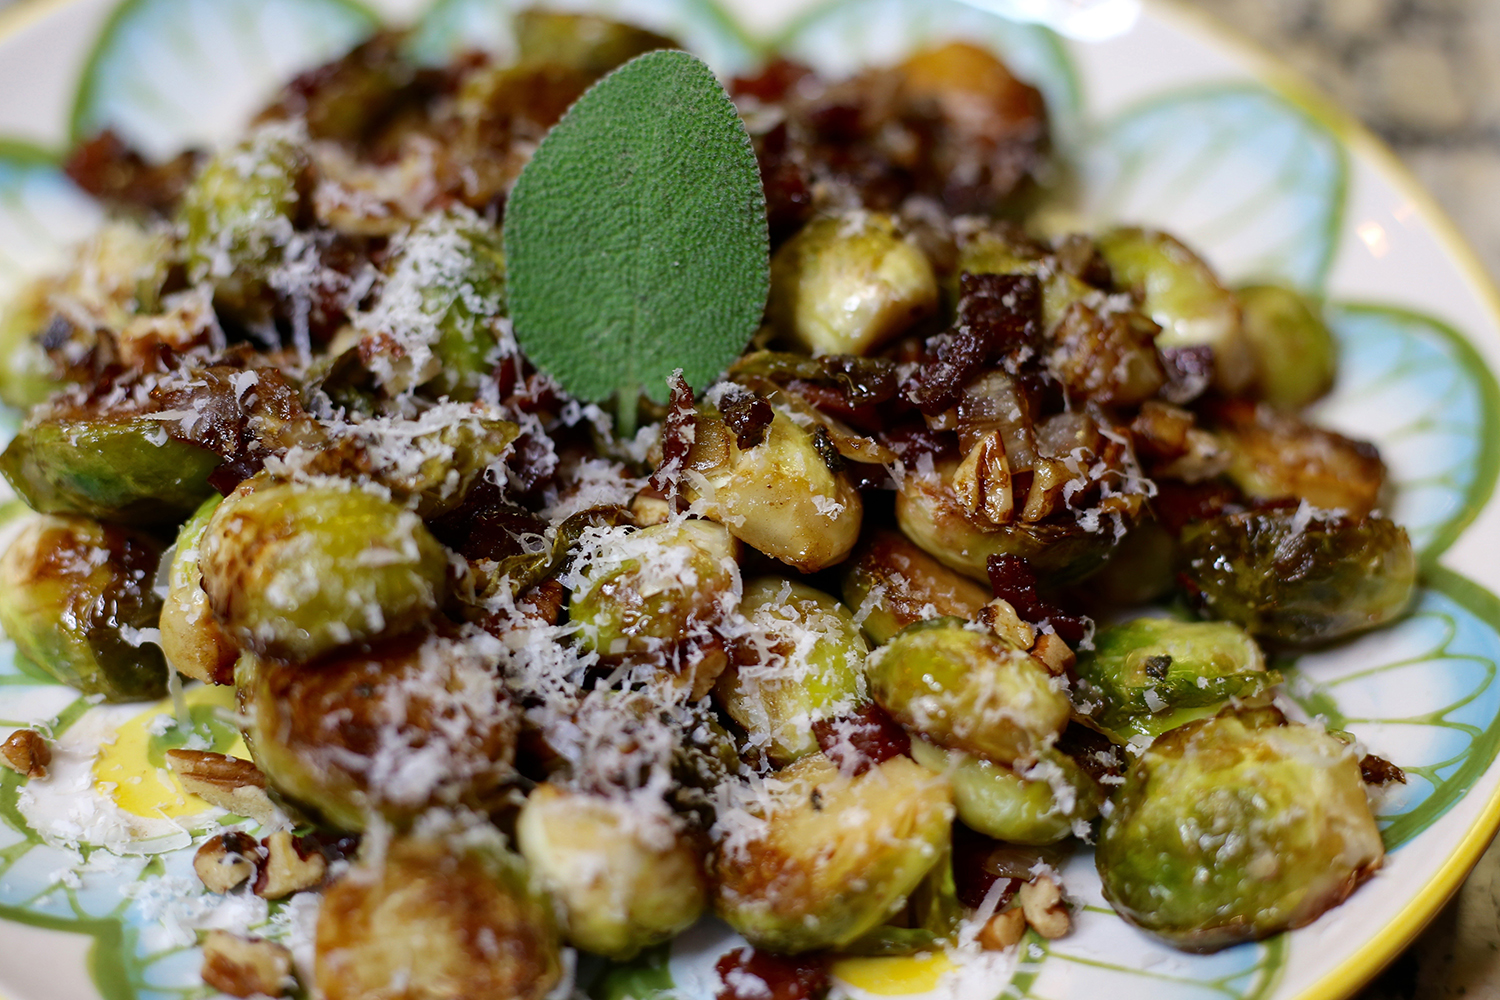 If you think you don't like brussel sprouts, it's because you've never tried them this way!